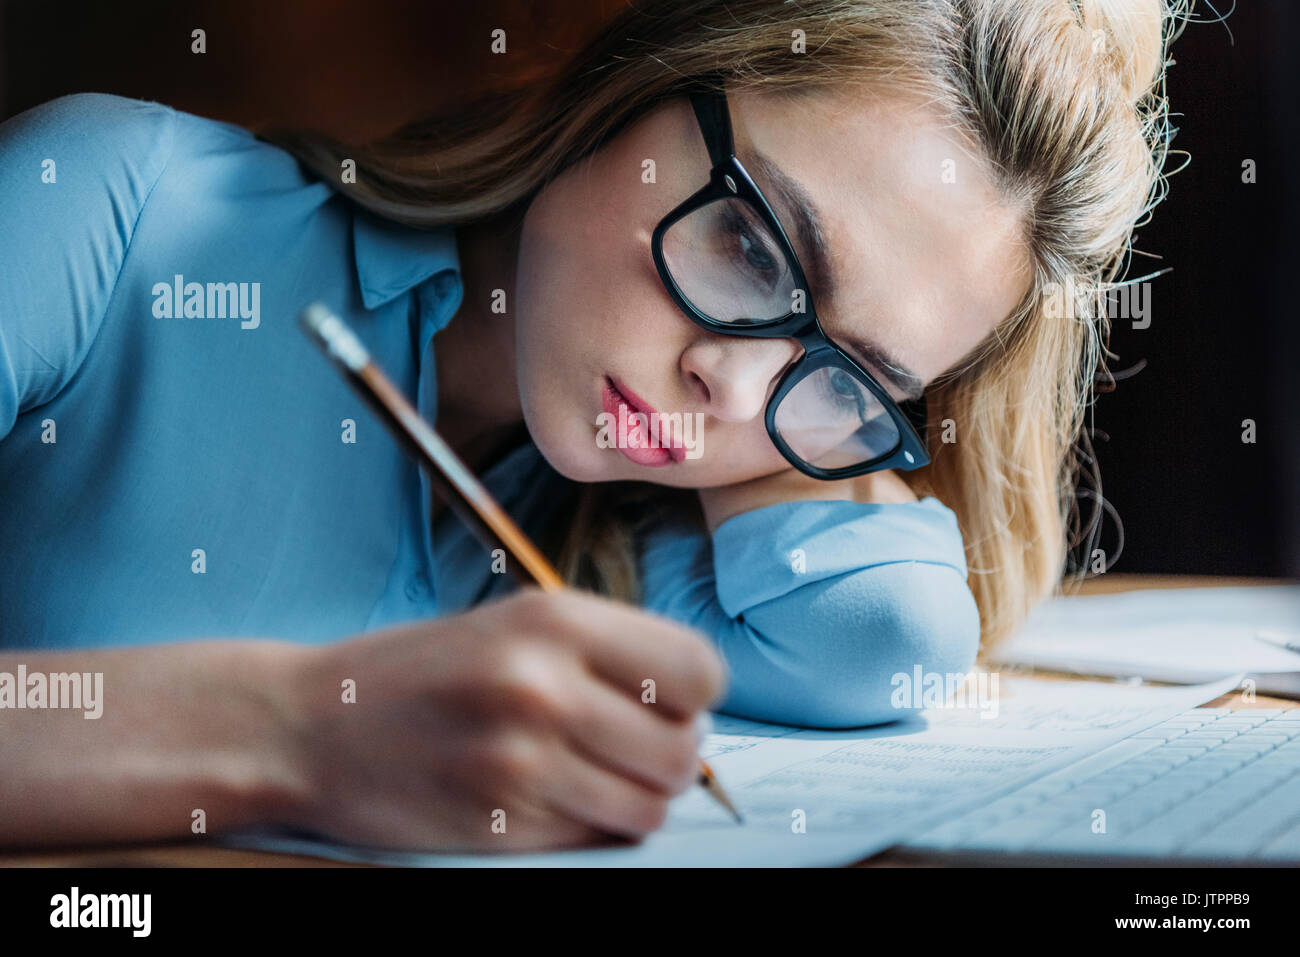 tired blonde caucasian student in eyeglasses lying on hand and writing something with pencil, studying till late - Stock Image